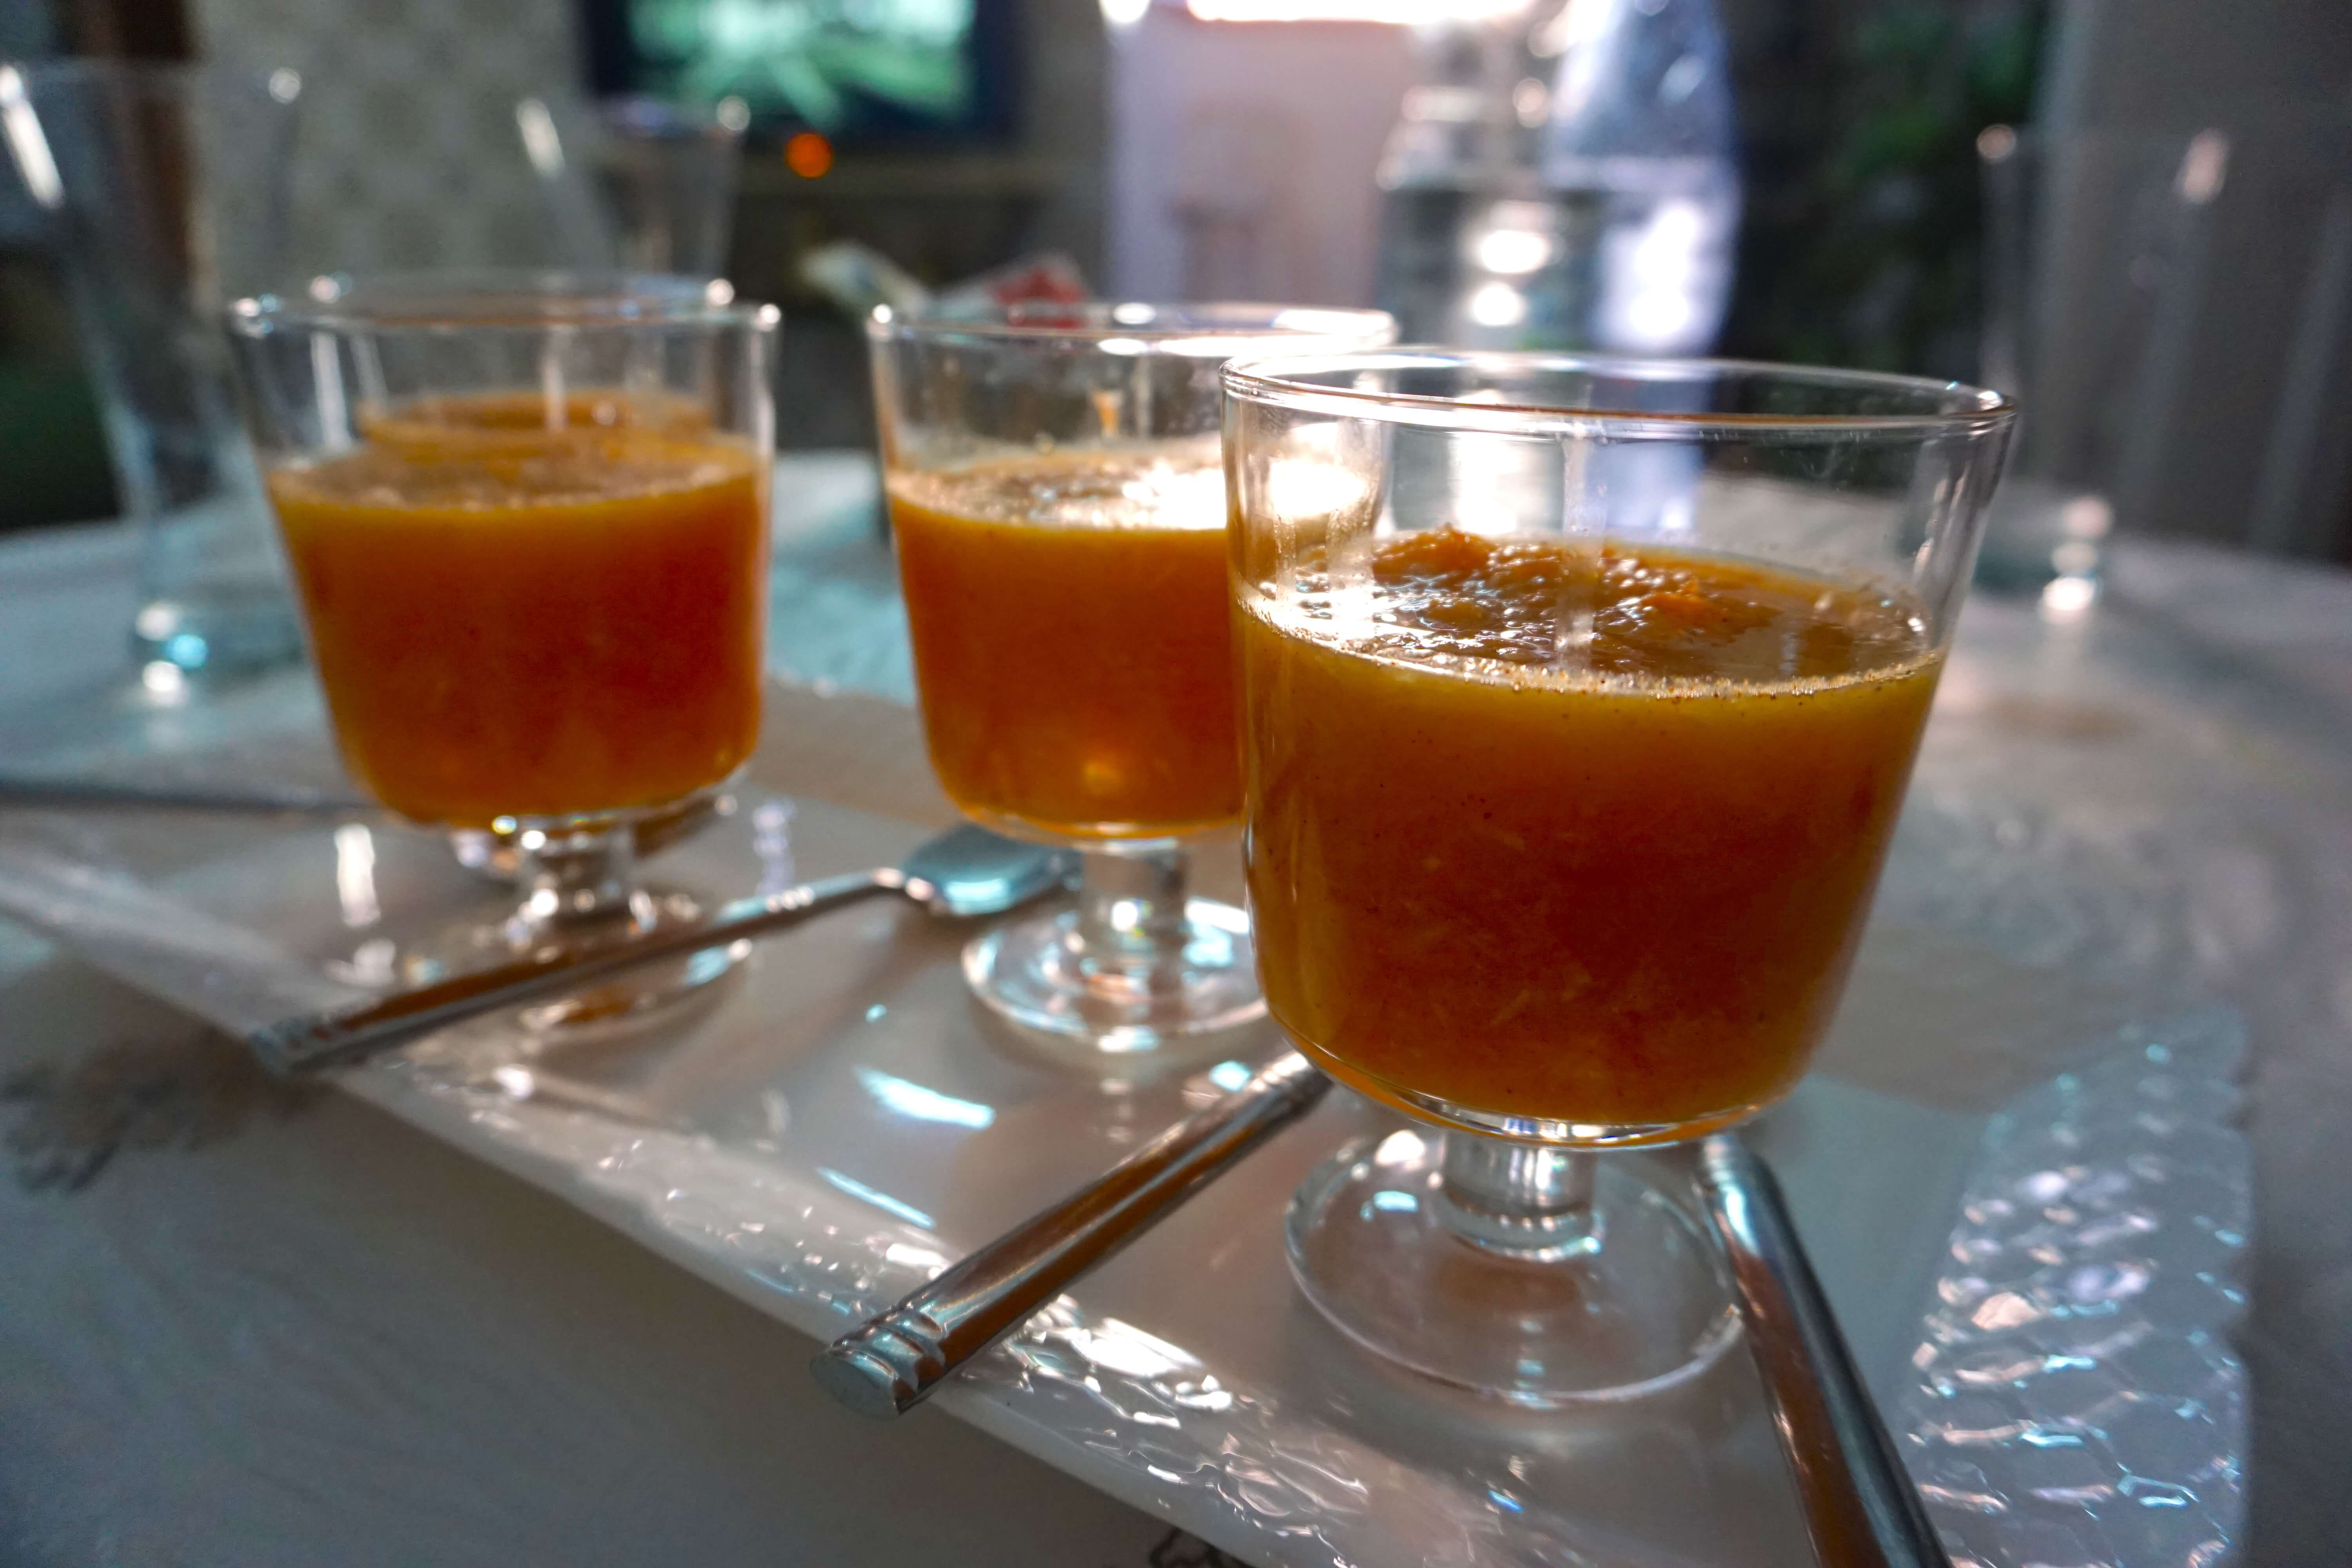 Carrots in Orange Juice - Morocco Food Guide: Delicious foods you need to try while visiting Morocco